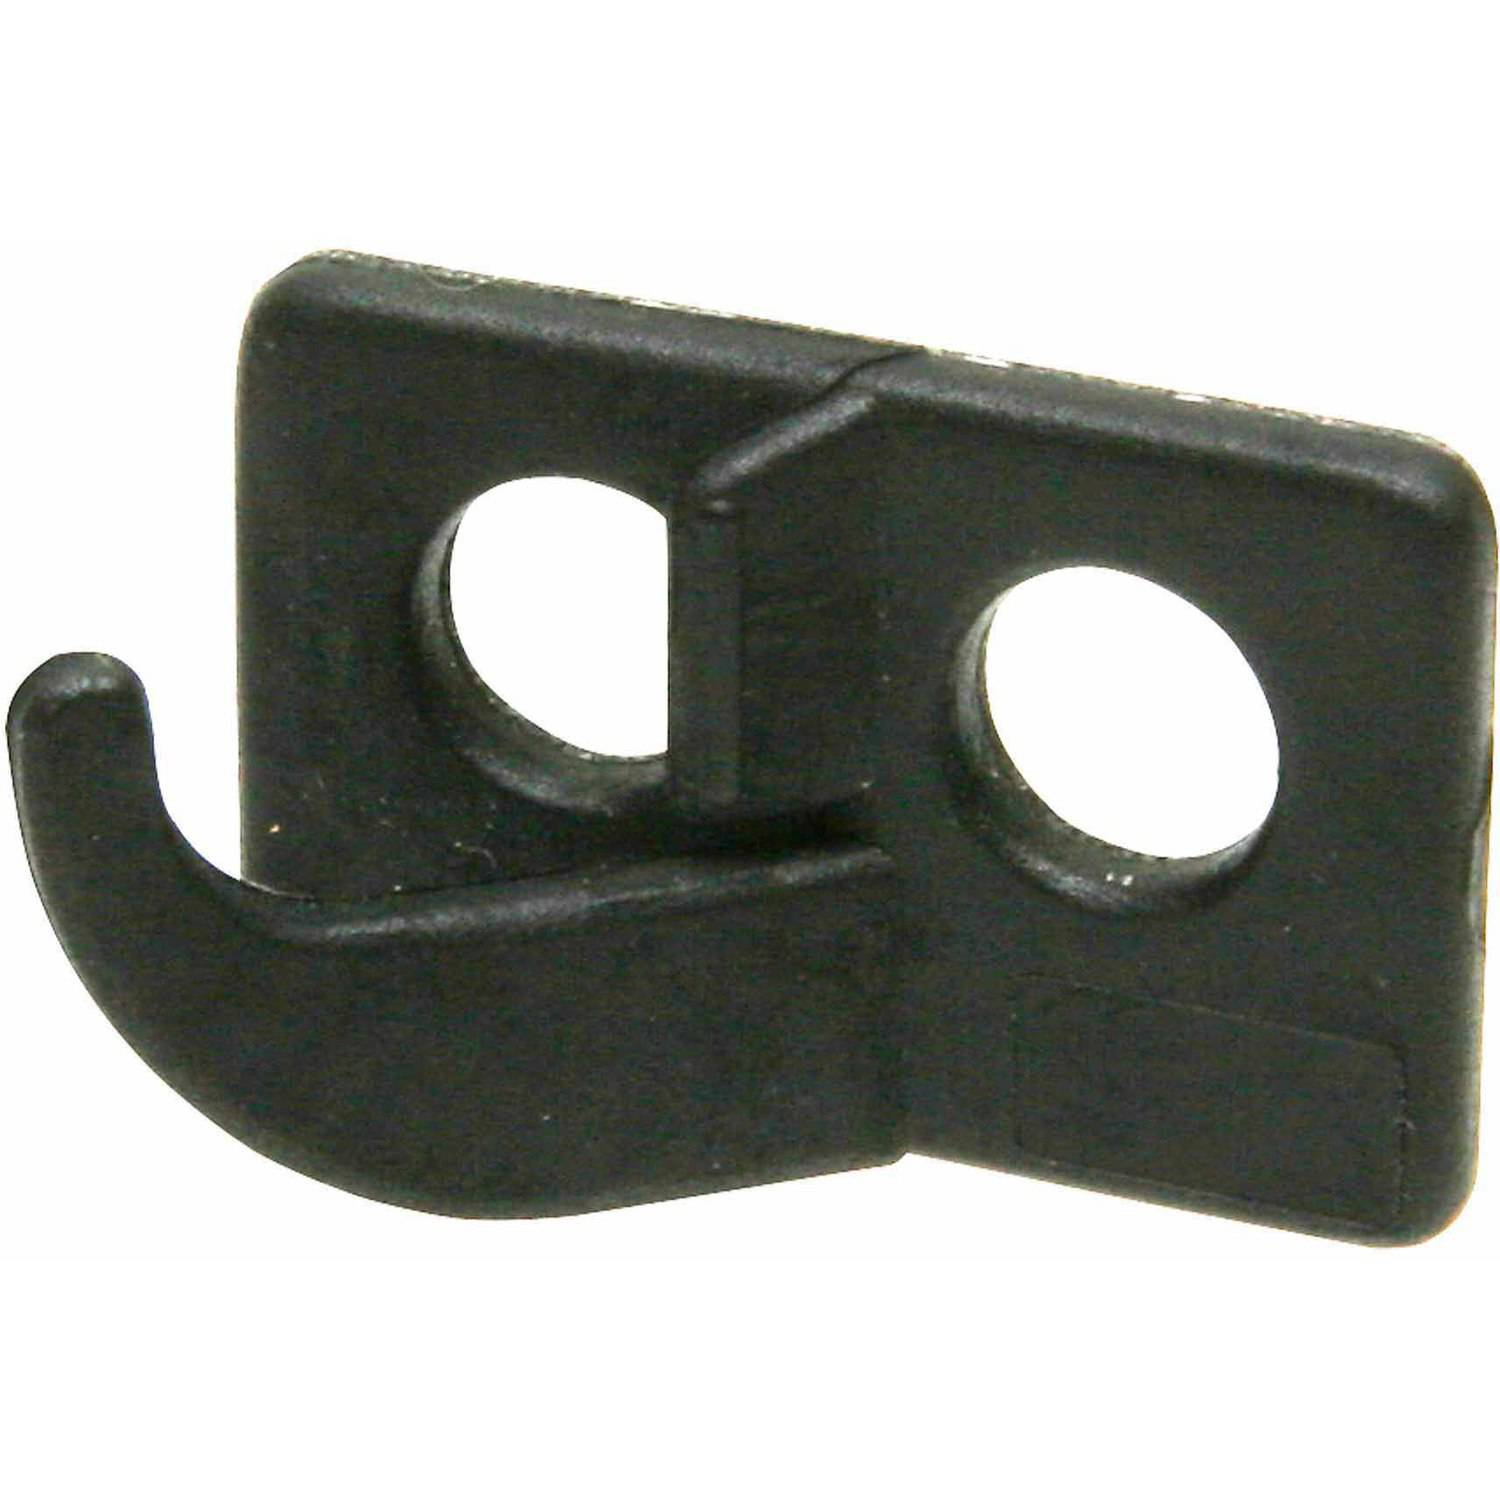 October Mountain 2-Hole Rest, Black